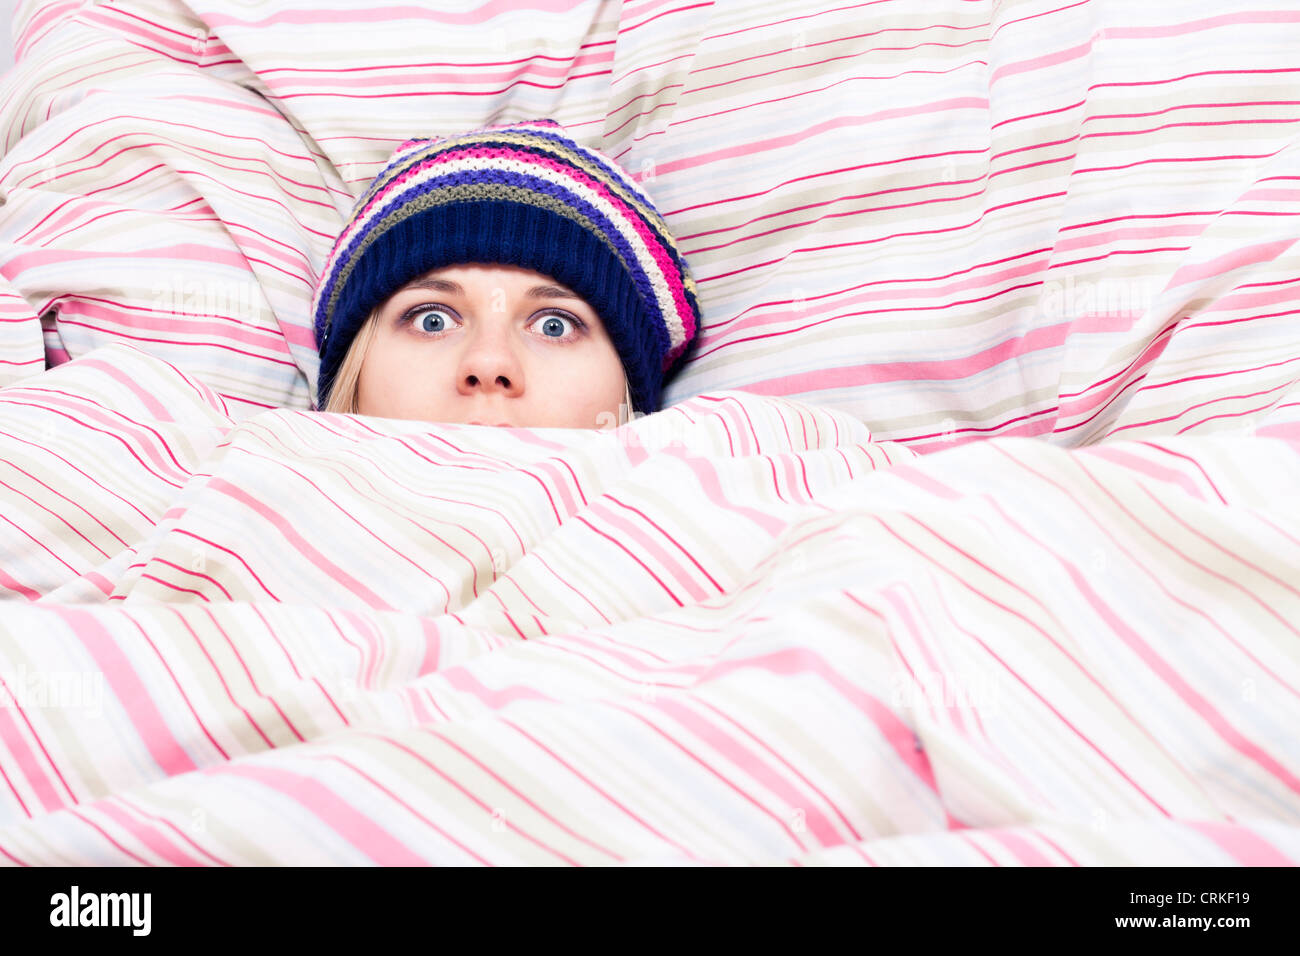 Scared woman in winter hat hiding wrapped in duvet. - Stock Image